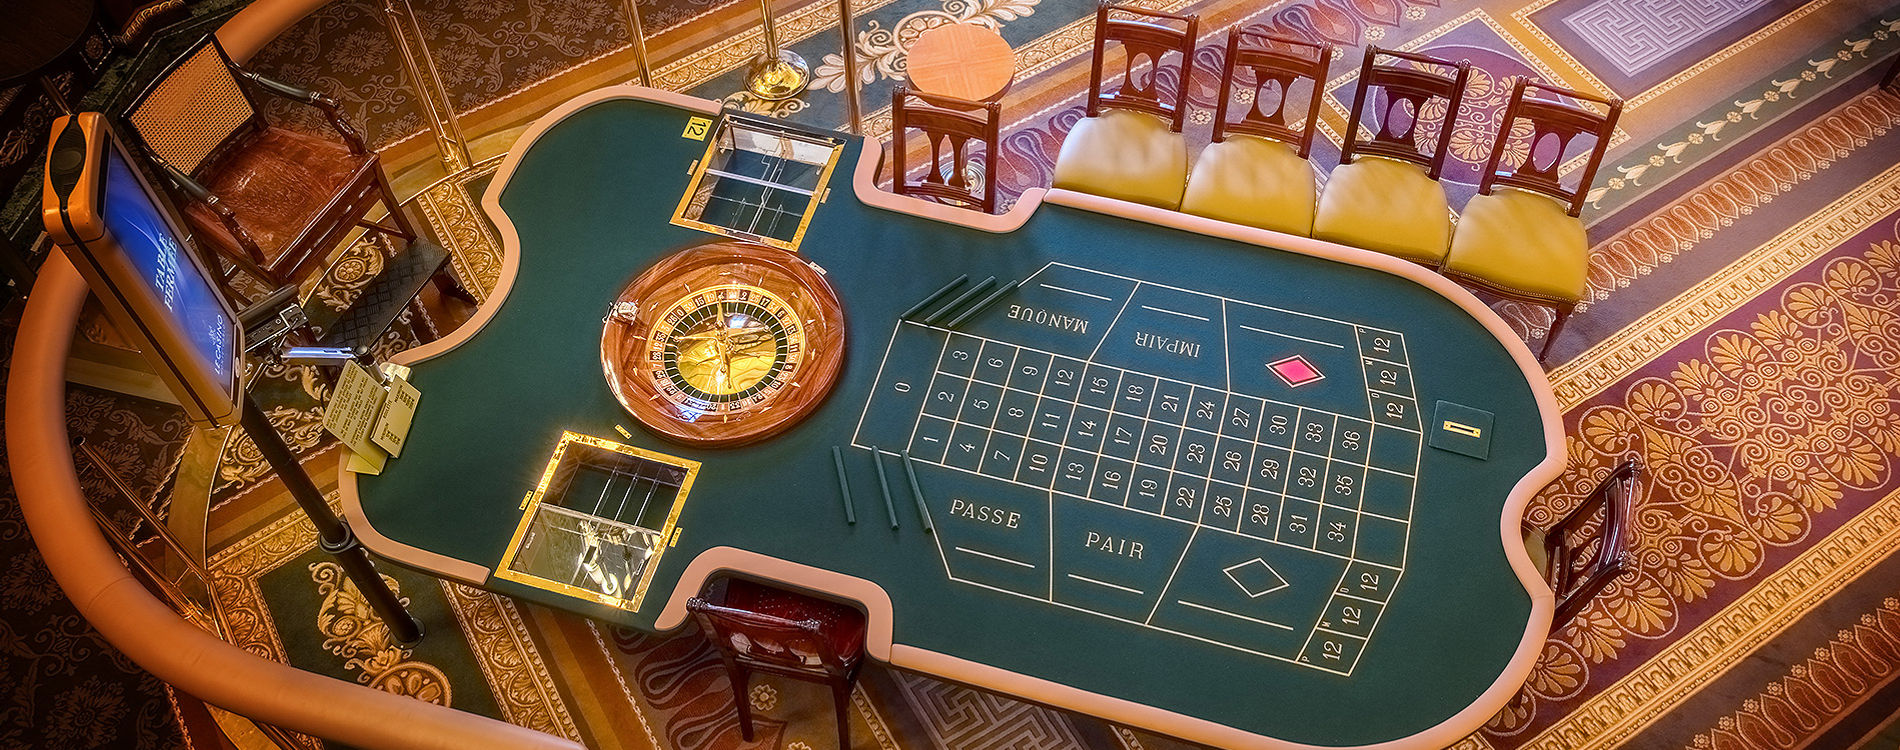 The Exciting Online Casino Roulette Game